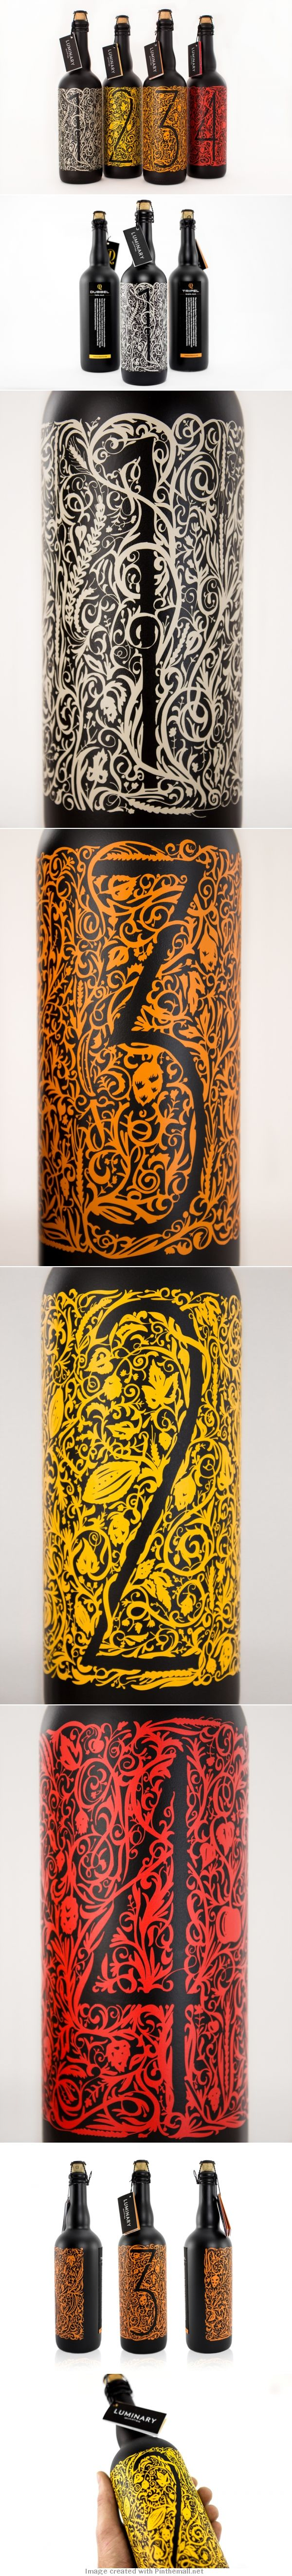 Amazingly modern and intricate packaging; I love the style of illustration.